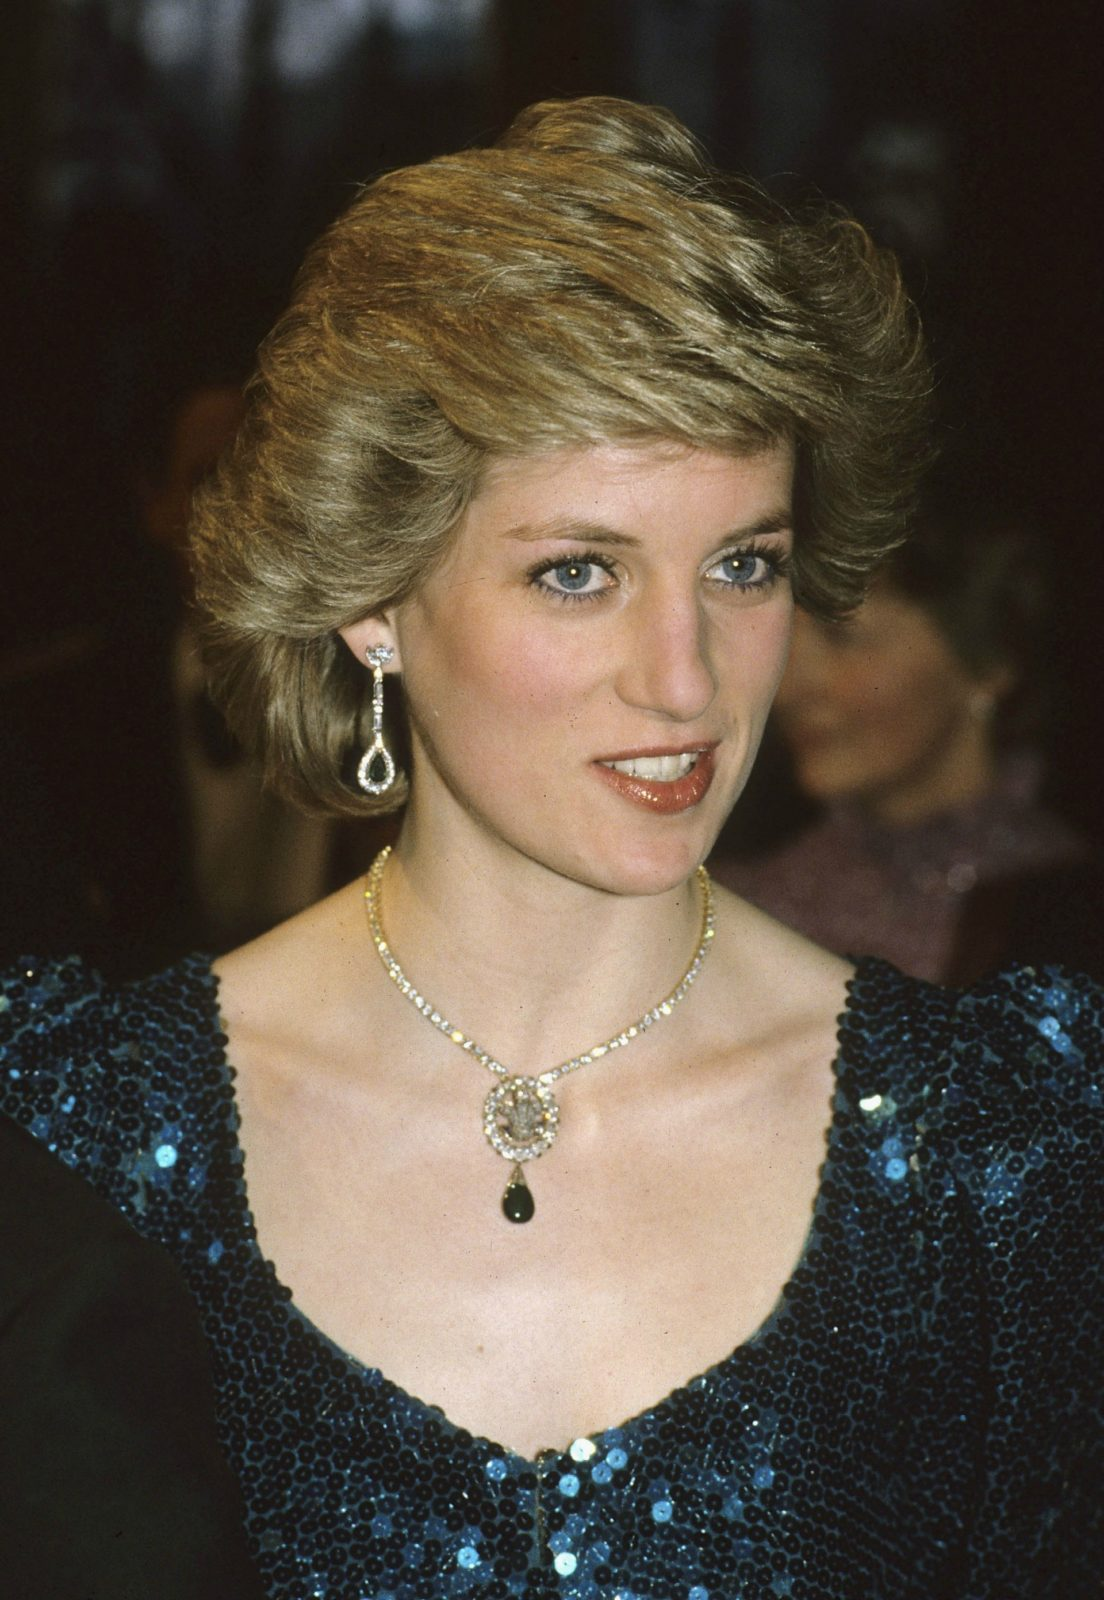 Princess Diana during a state visit to Vienna, Austria in 1986. Source: Getty